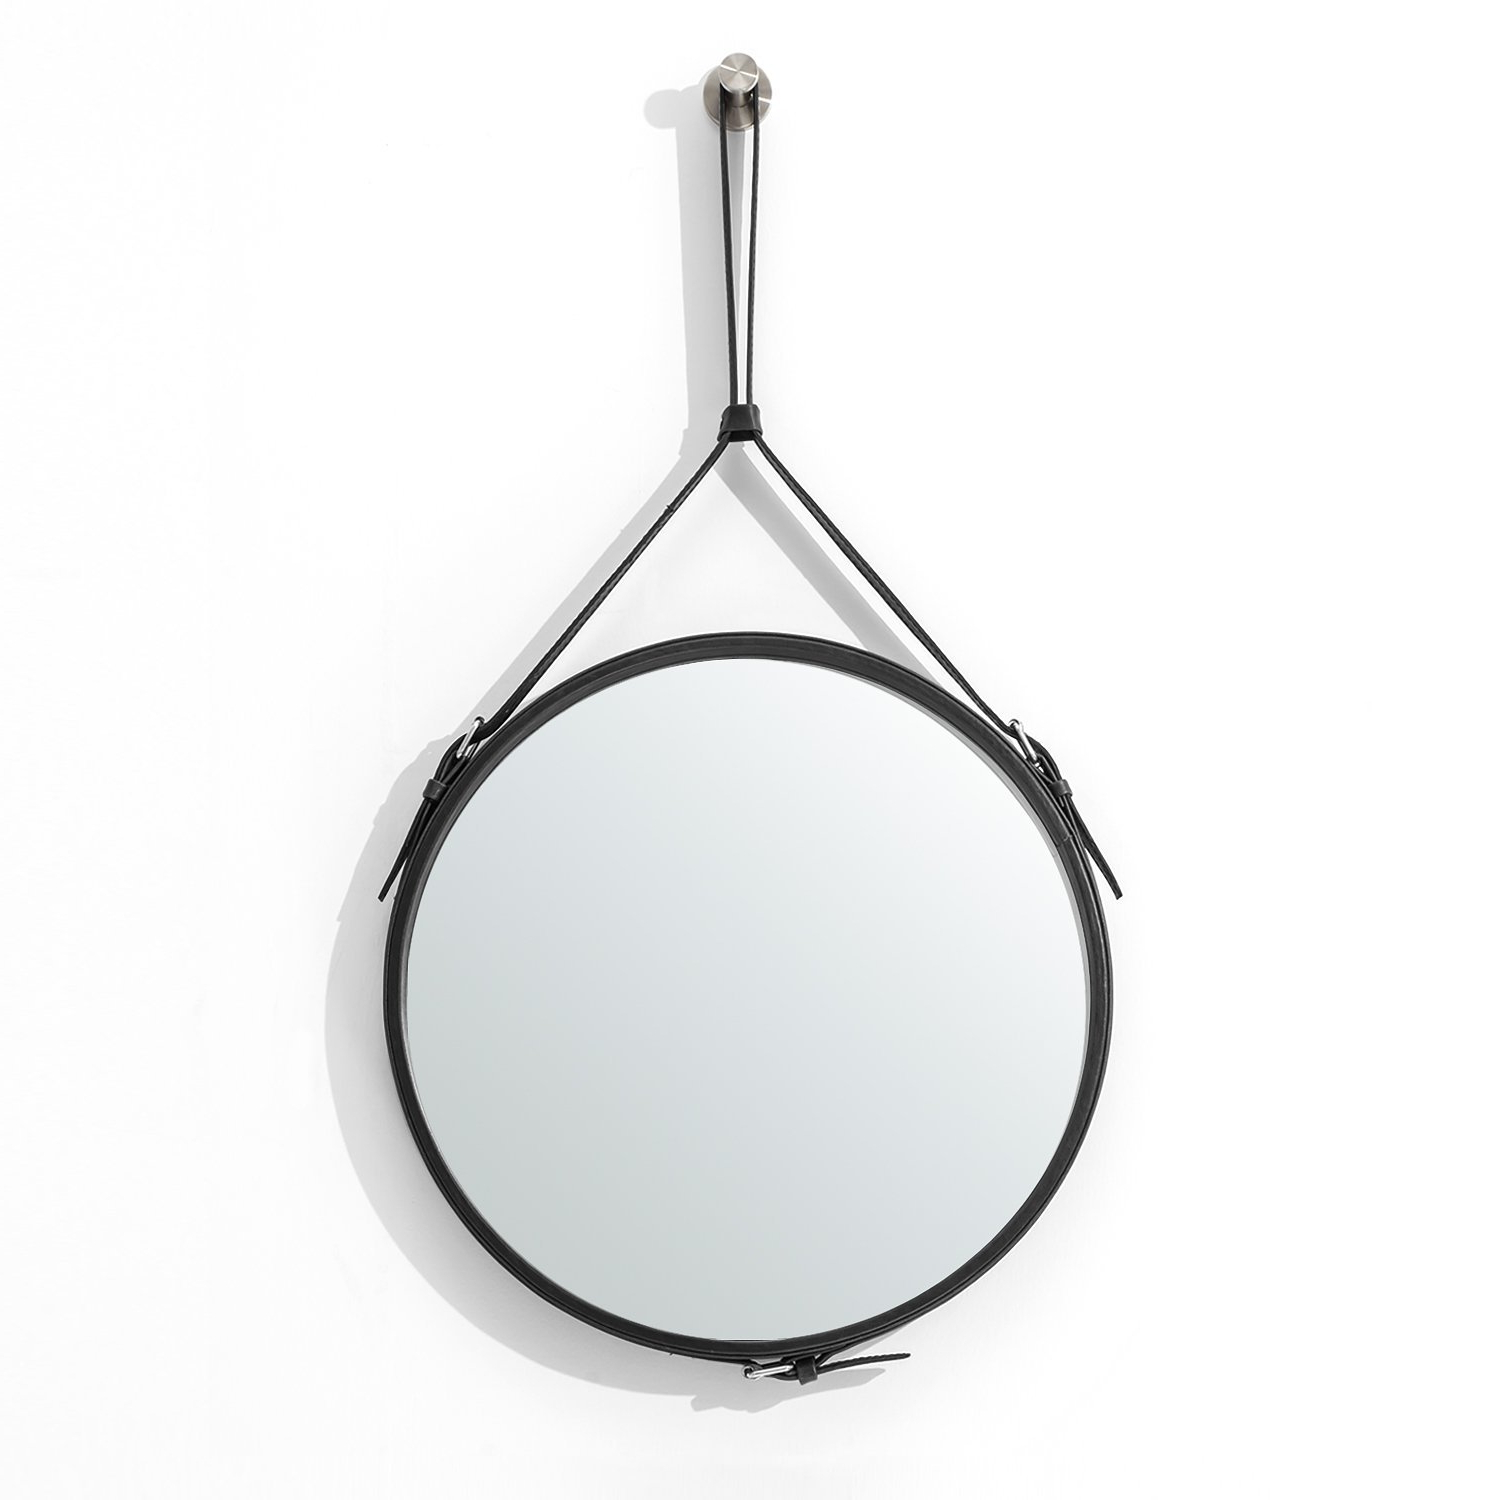 Well Liked Hang Wall Mirrors Intended For Ranslen Decorative Hanging Wall Mirror 15 Inch Round Rustic Wall Mirror  With Hanging Strap For Bathroom/bedroom/living Room Home Decor (Black) (Gallery 13 of 20)